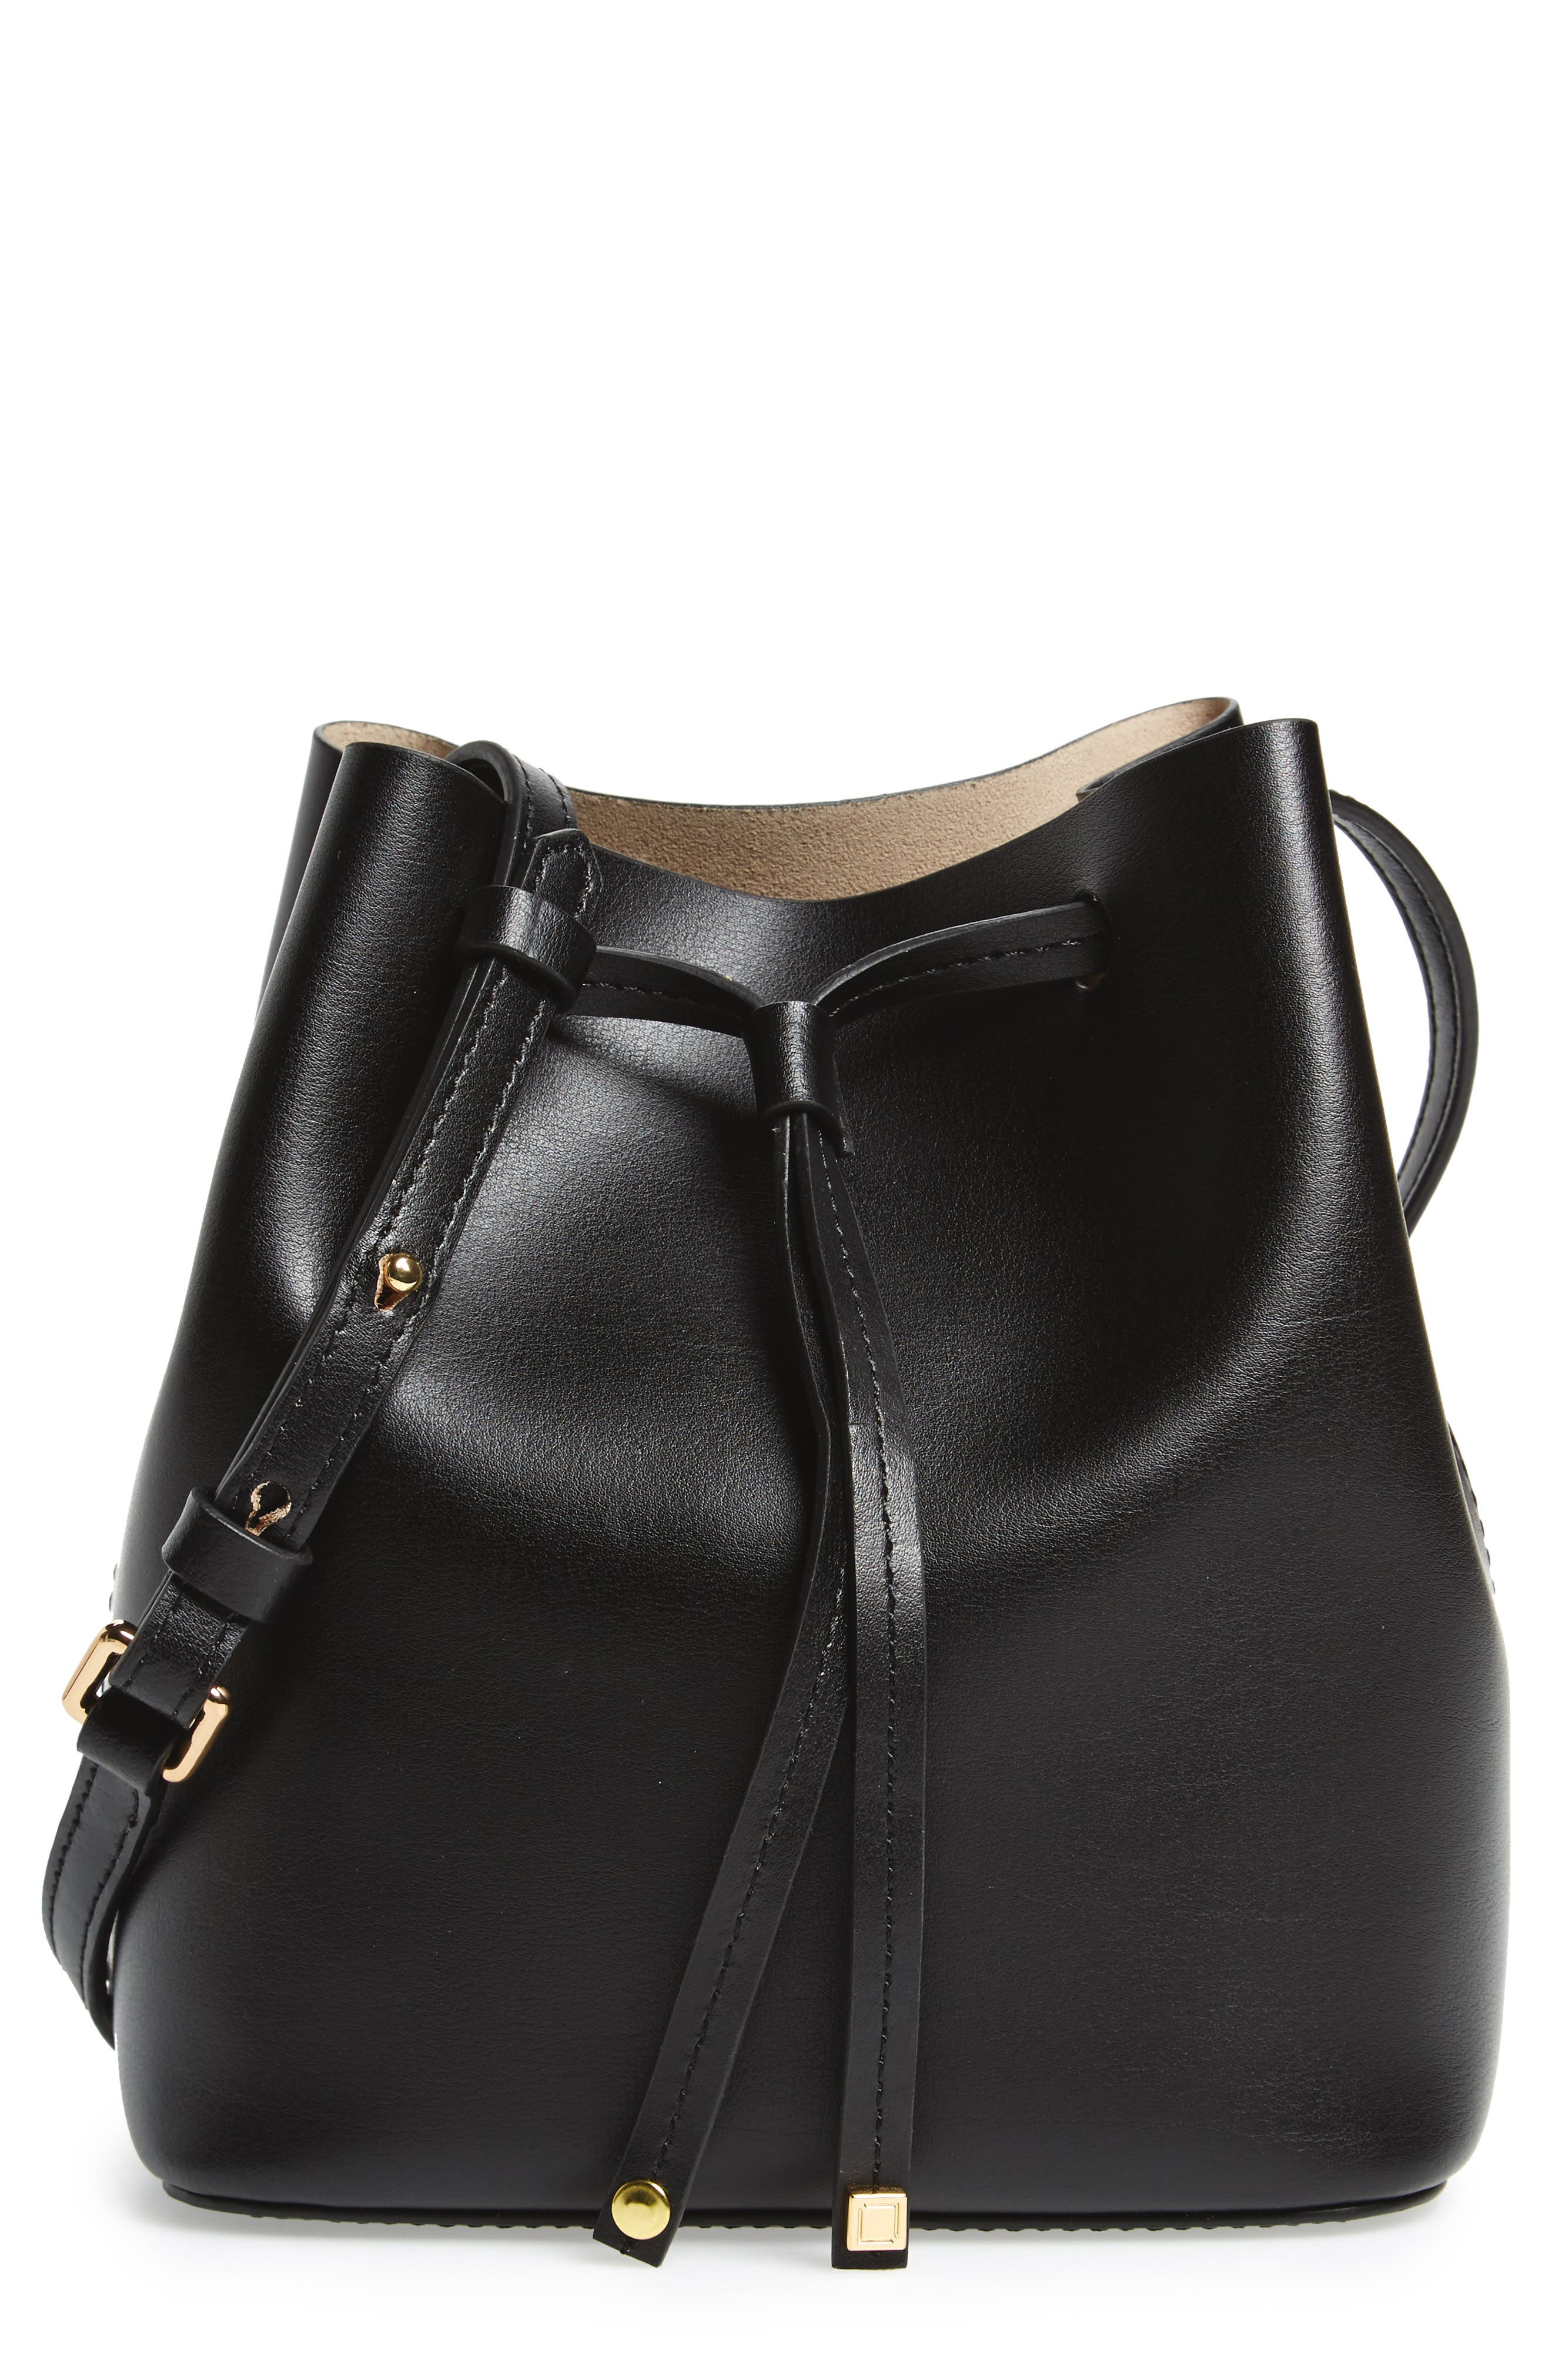 LODIS Small Silicon Valley Blake RFID Leather Bucket Bag,                             Main thumbnail 1, color,                             Black/ Taupe